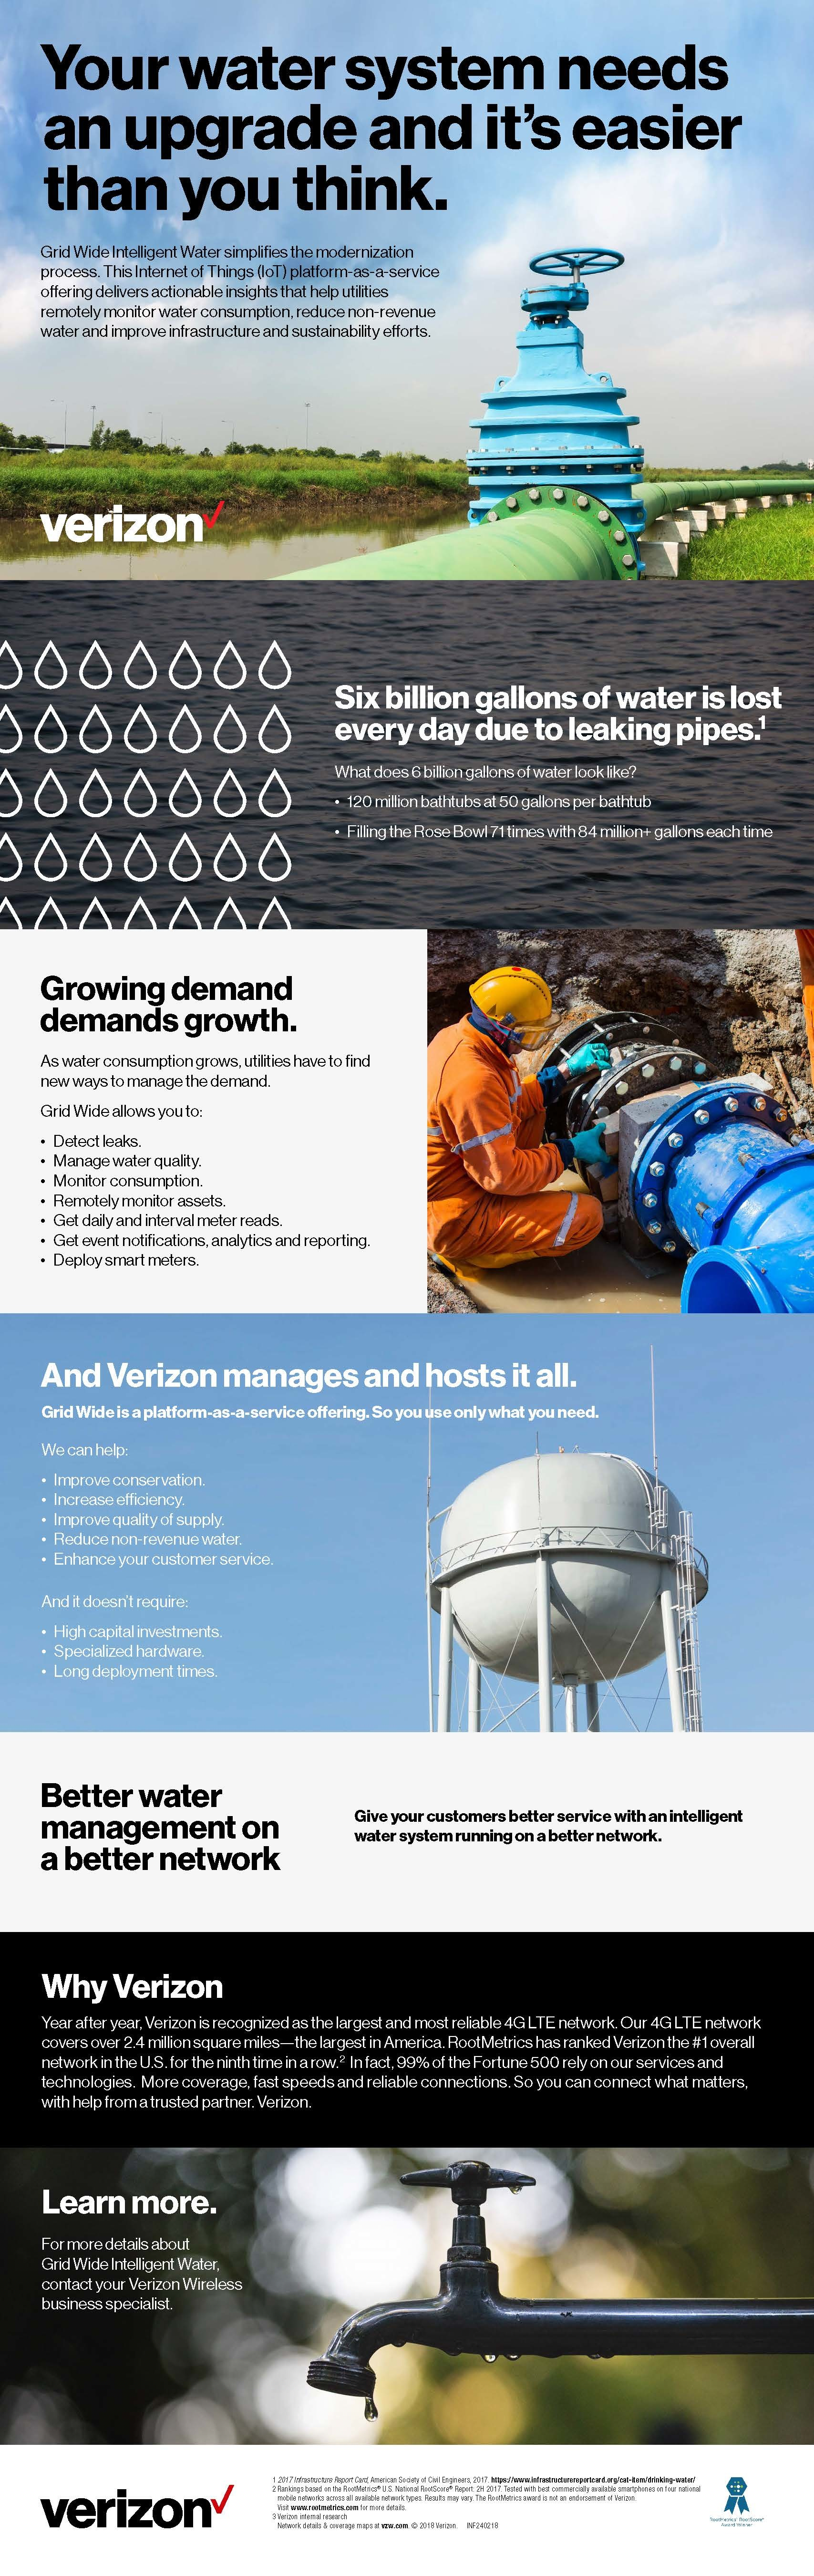 10858325_Infographic_Water_System_Upgrade_V1c.jpg